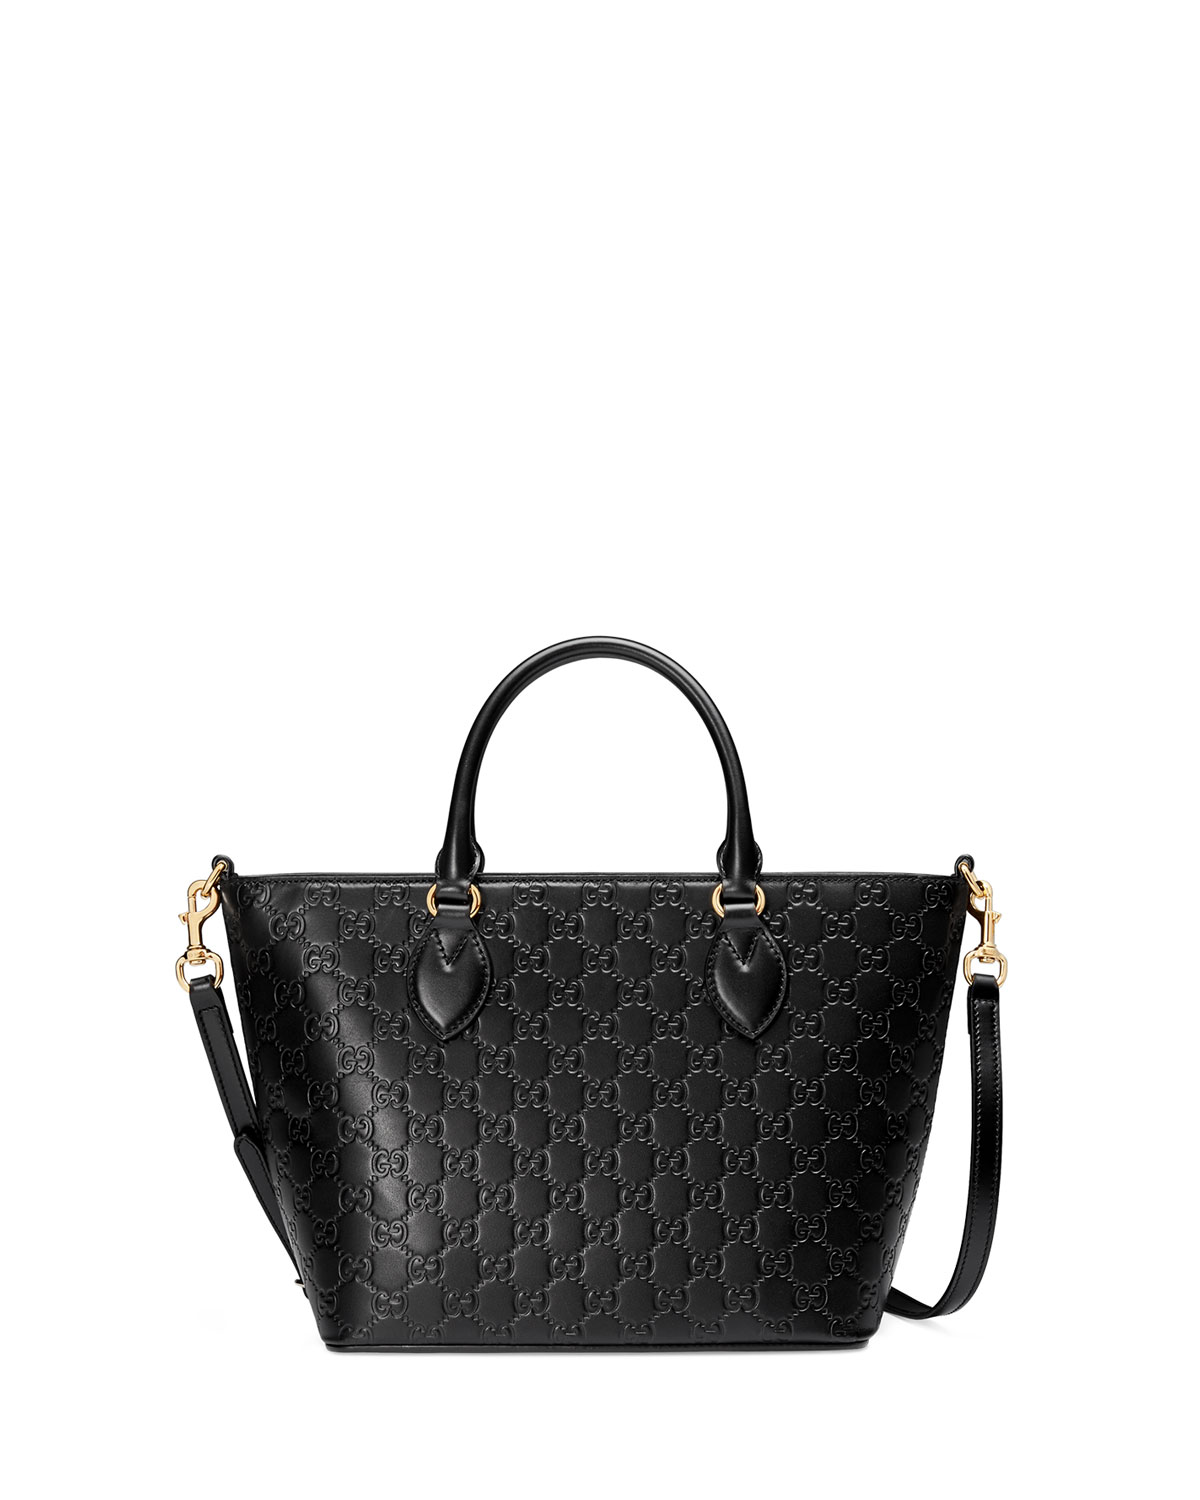 89038d18c9b3 Gucci Guccissima Small Leather Tote Bag, Black | Neiman Marcus